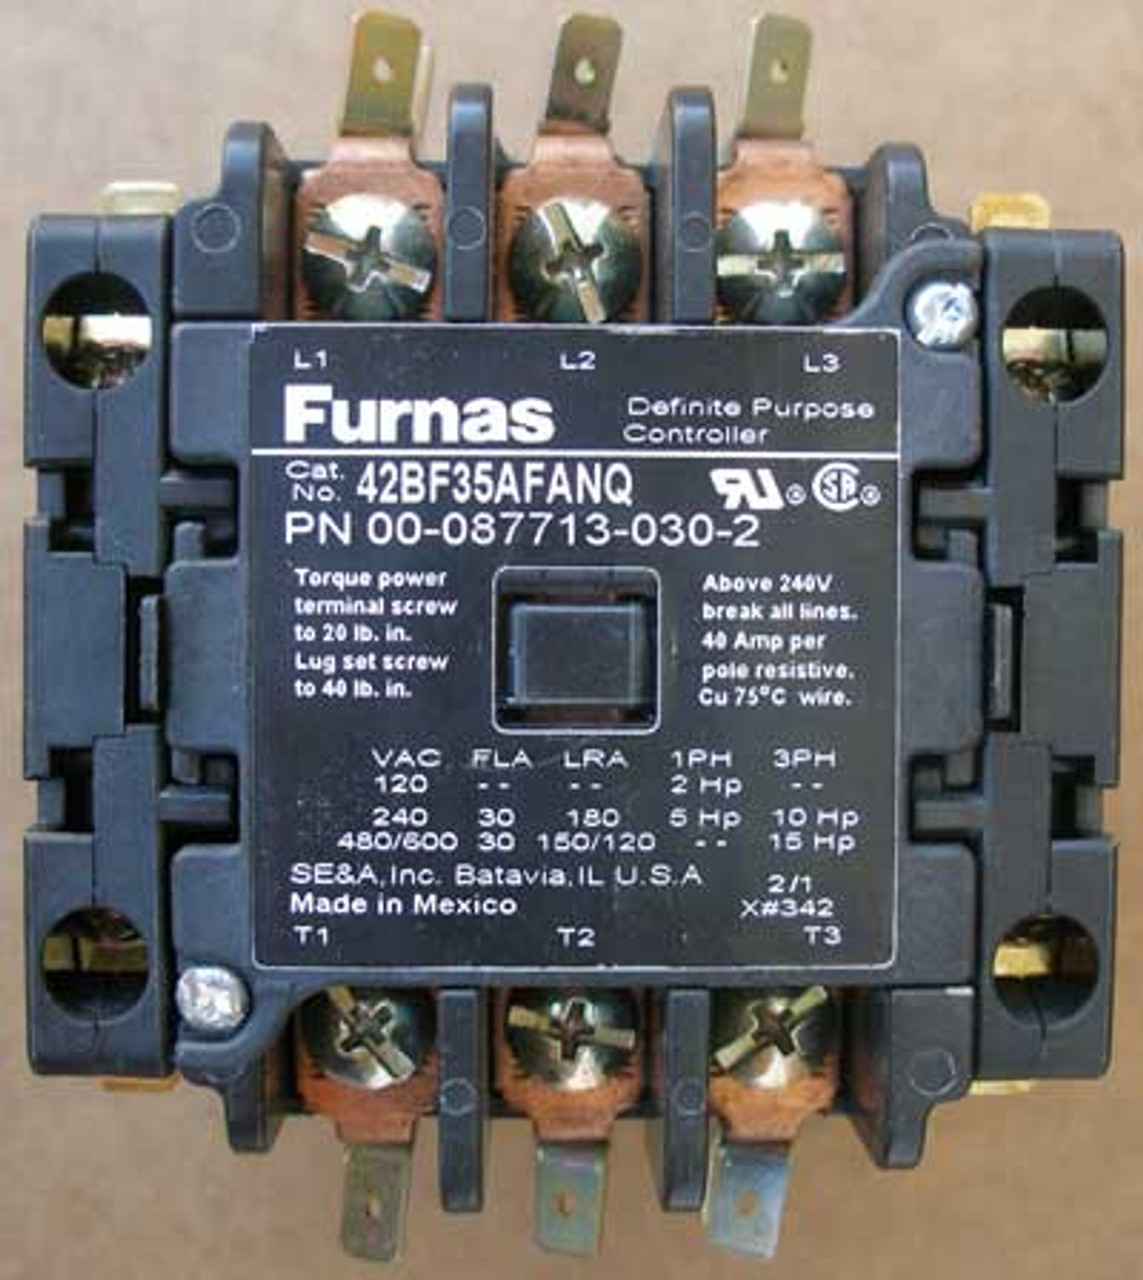 Furnas 42BF35AFANQ Definite Purpose Controller 30A 3P  110/120V Open